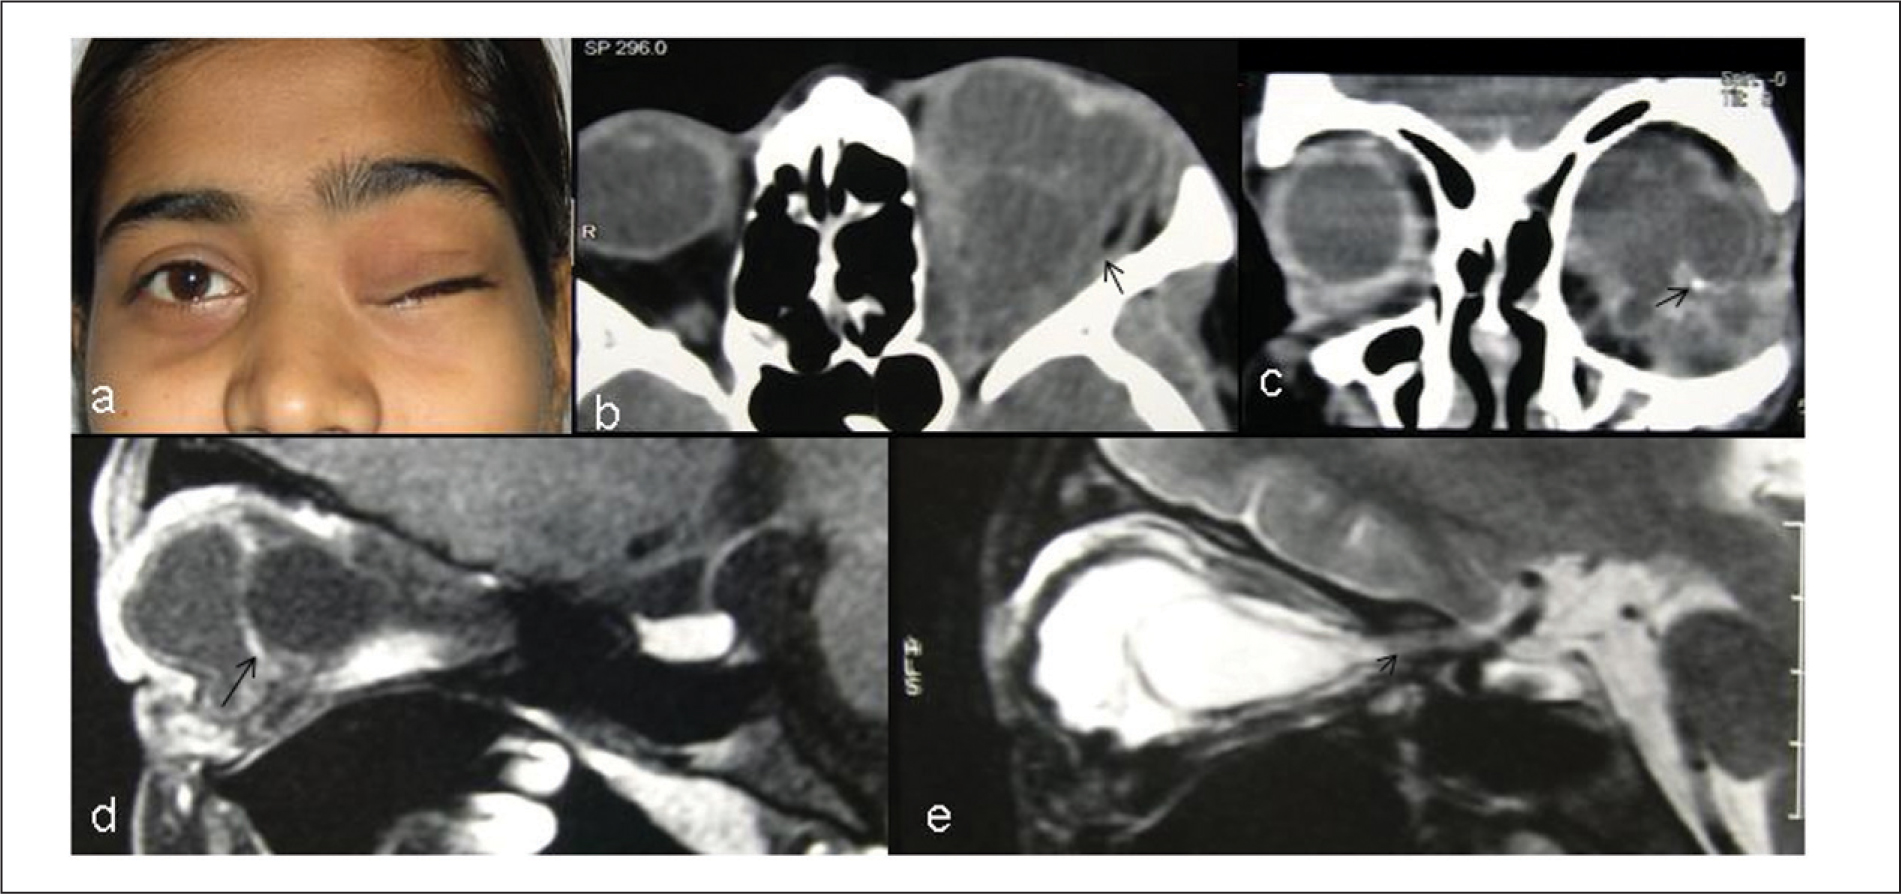 (A) Front View of Patient at Presentation Showing Bulge in Left Upper Eyelid with Completely Closed Palpebral Aperture. (B) Post-Contrast Axial and (C) Coronal CT Scan Showing a Multi-Cystic Left Intraorbital Mass Causing Expansion of the Bony Orbit with a Few Specks of Calcification (arrow). Small Enhancing Solid Component is Presumably Embryonic Neuroglial Tissue. Note the Left Lateral Rectus Muscle (arrow). (D) T1-Weighted and (E) T2-Weighted Sagittal Magnetic Resonance Images Show a Septum (arrow) Dividing the Mass into Anterior and Posterior Aspects. An Optic Nerve-Like Structure (arrow) is Seen Posteriorly in Relation to the Mass.